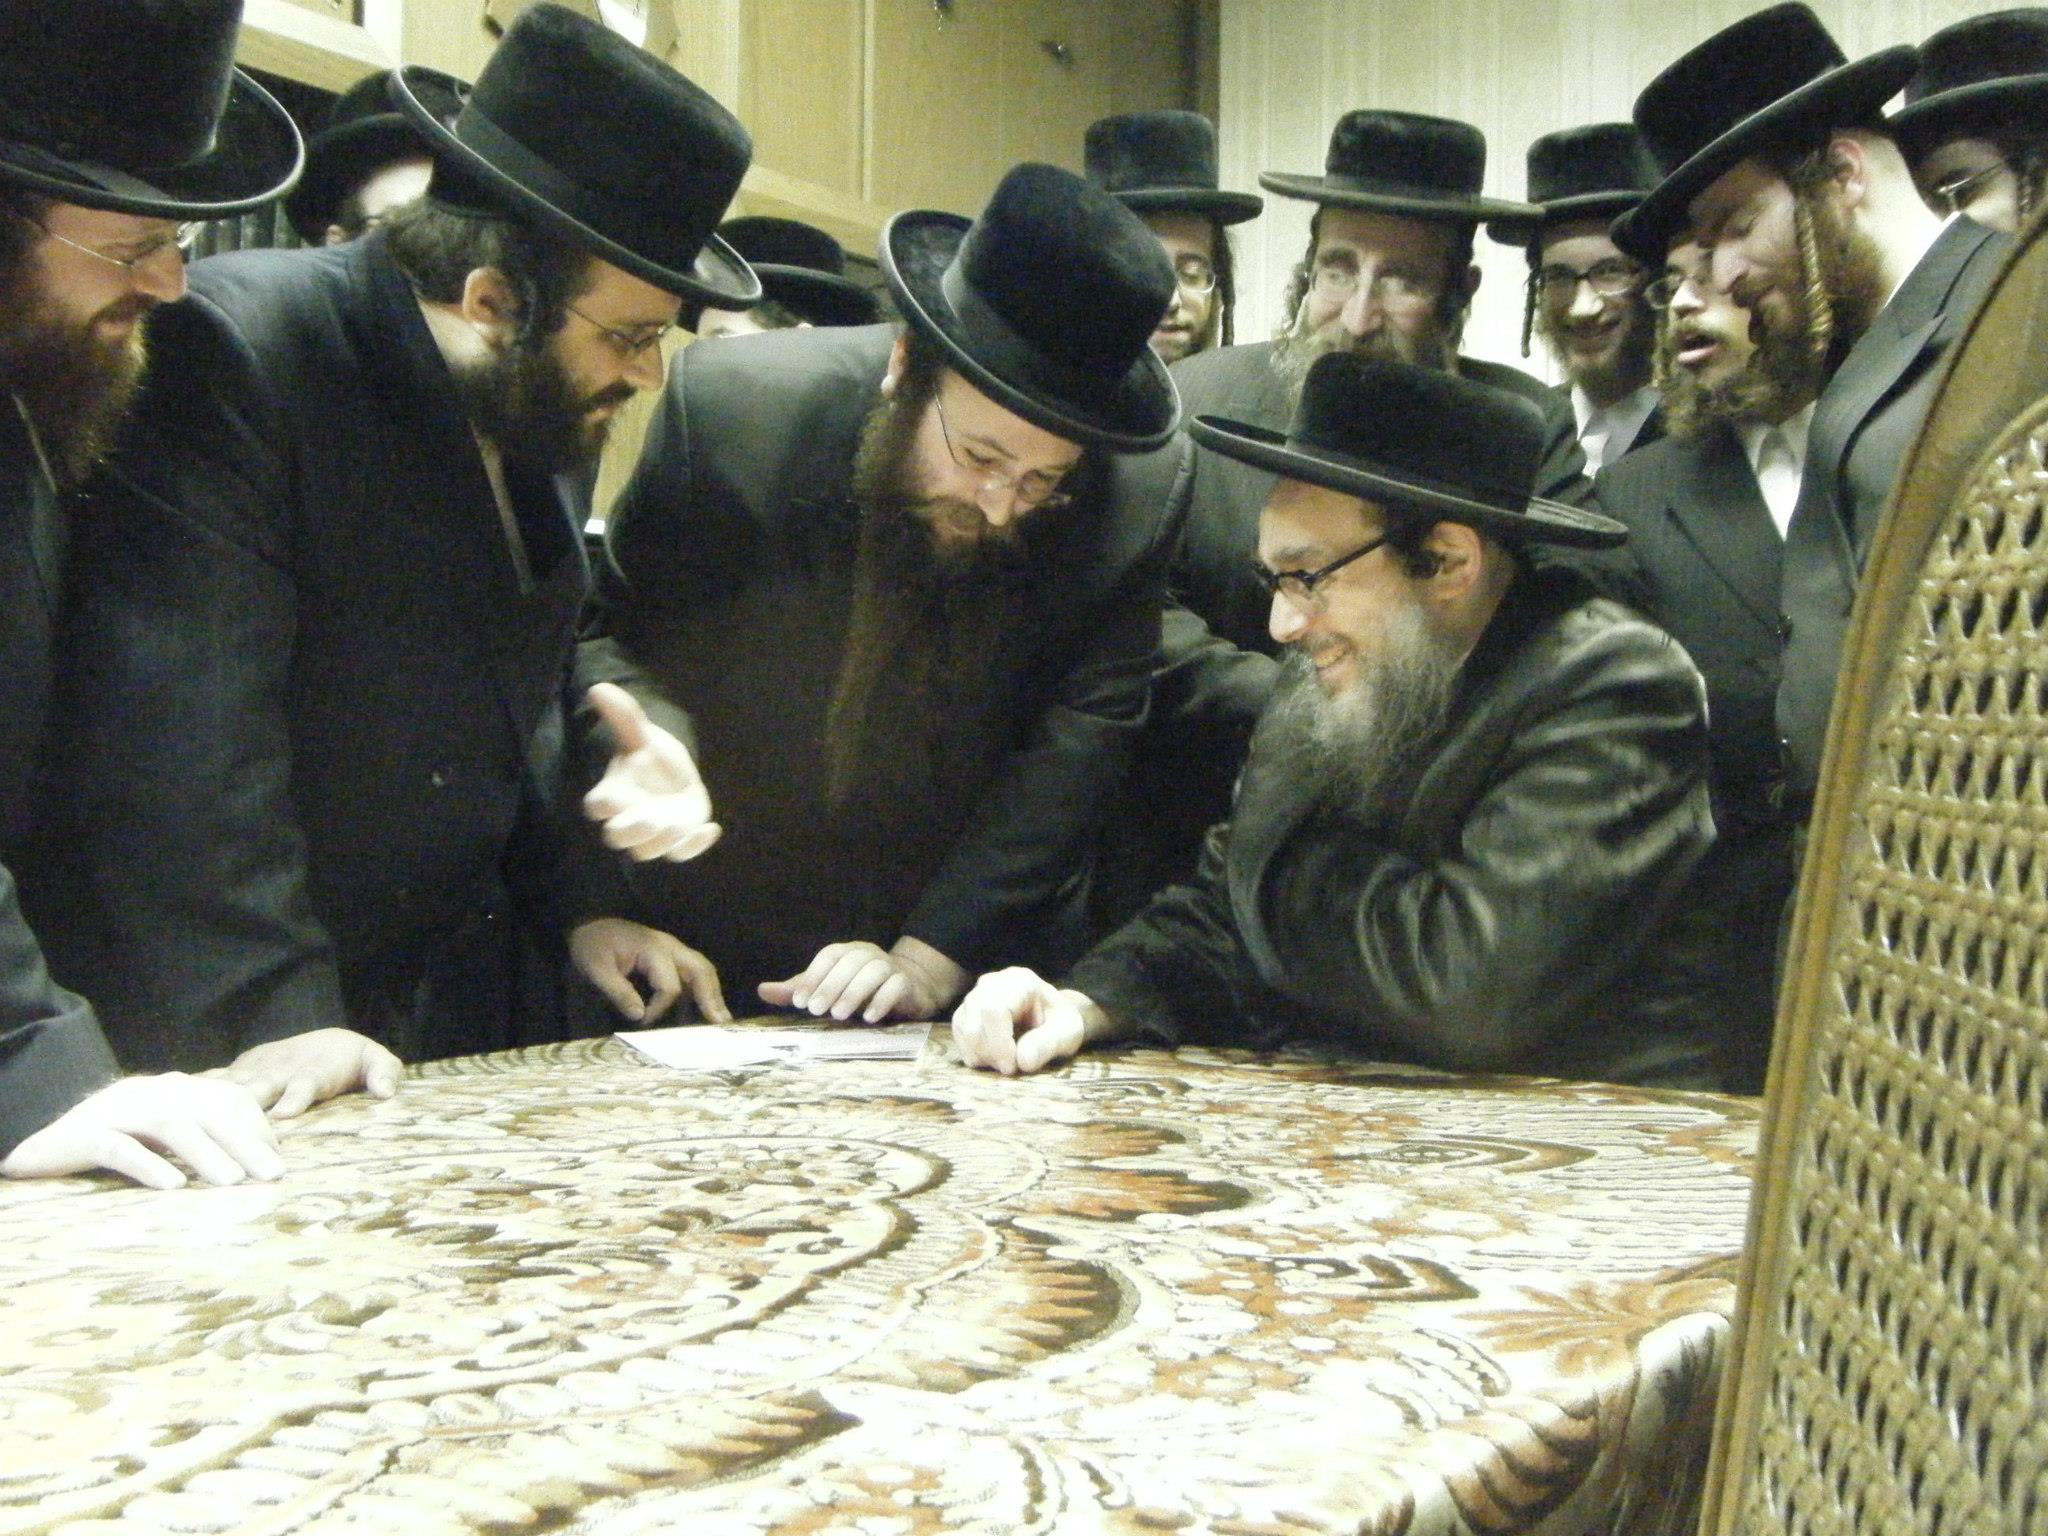 Masbia_Supporter__Pupa_Rebbe__Rabbi_Yaakov_Chizkiah_Greenwald_Donating_to_Feed_the_Needy.jpg